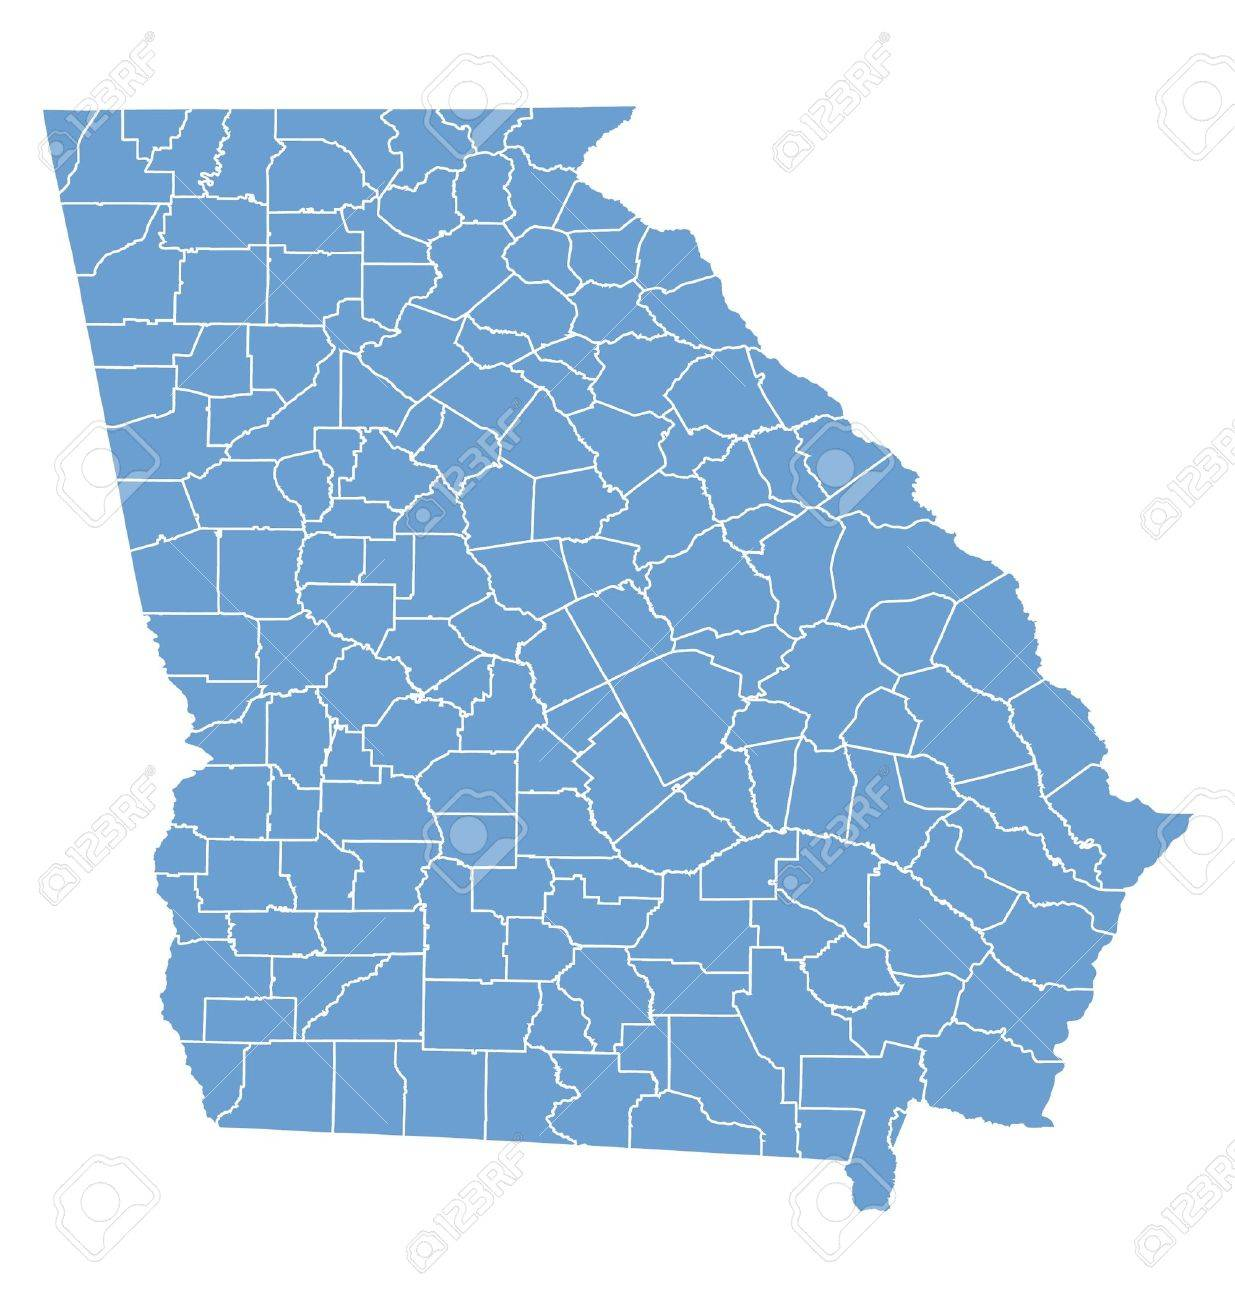 State Of Georgia Map With Counties.State Map Of Georgia By Counties